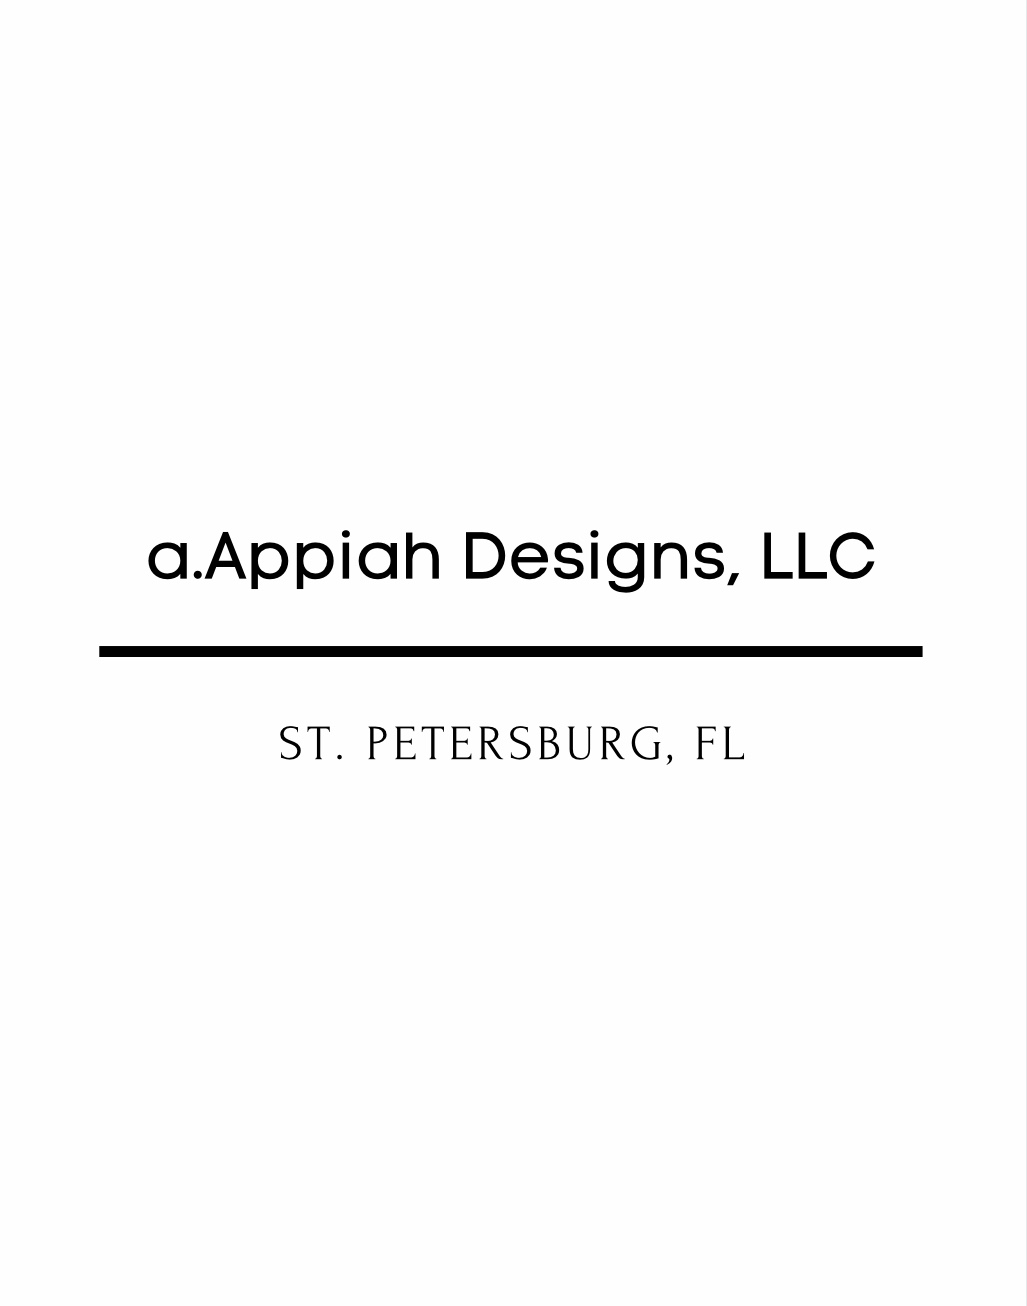 a.Appiah Designs, LLC